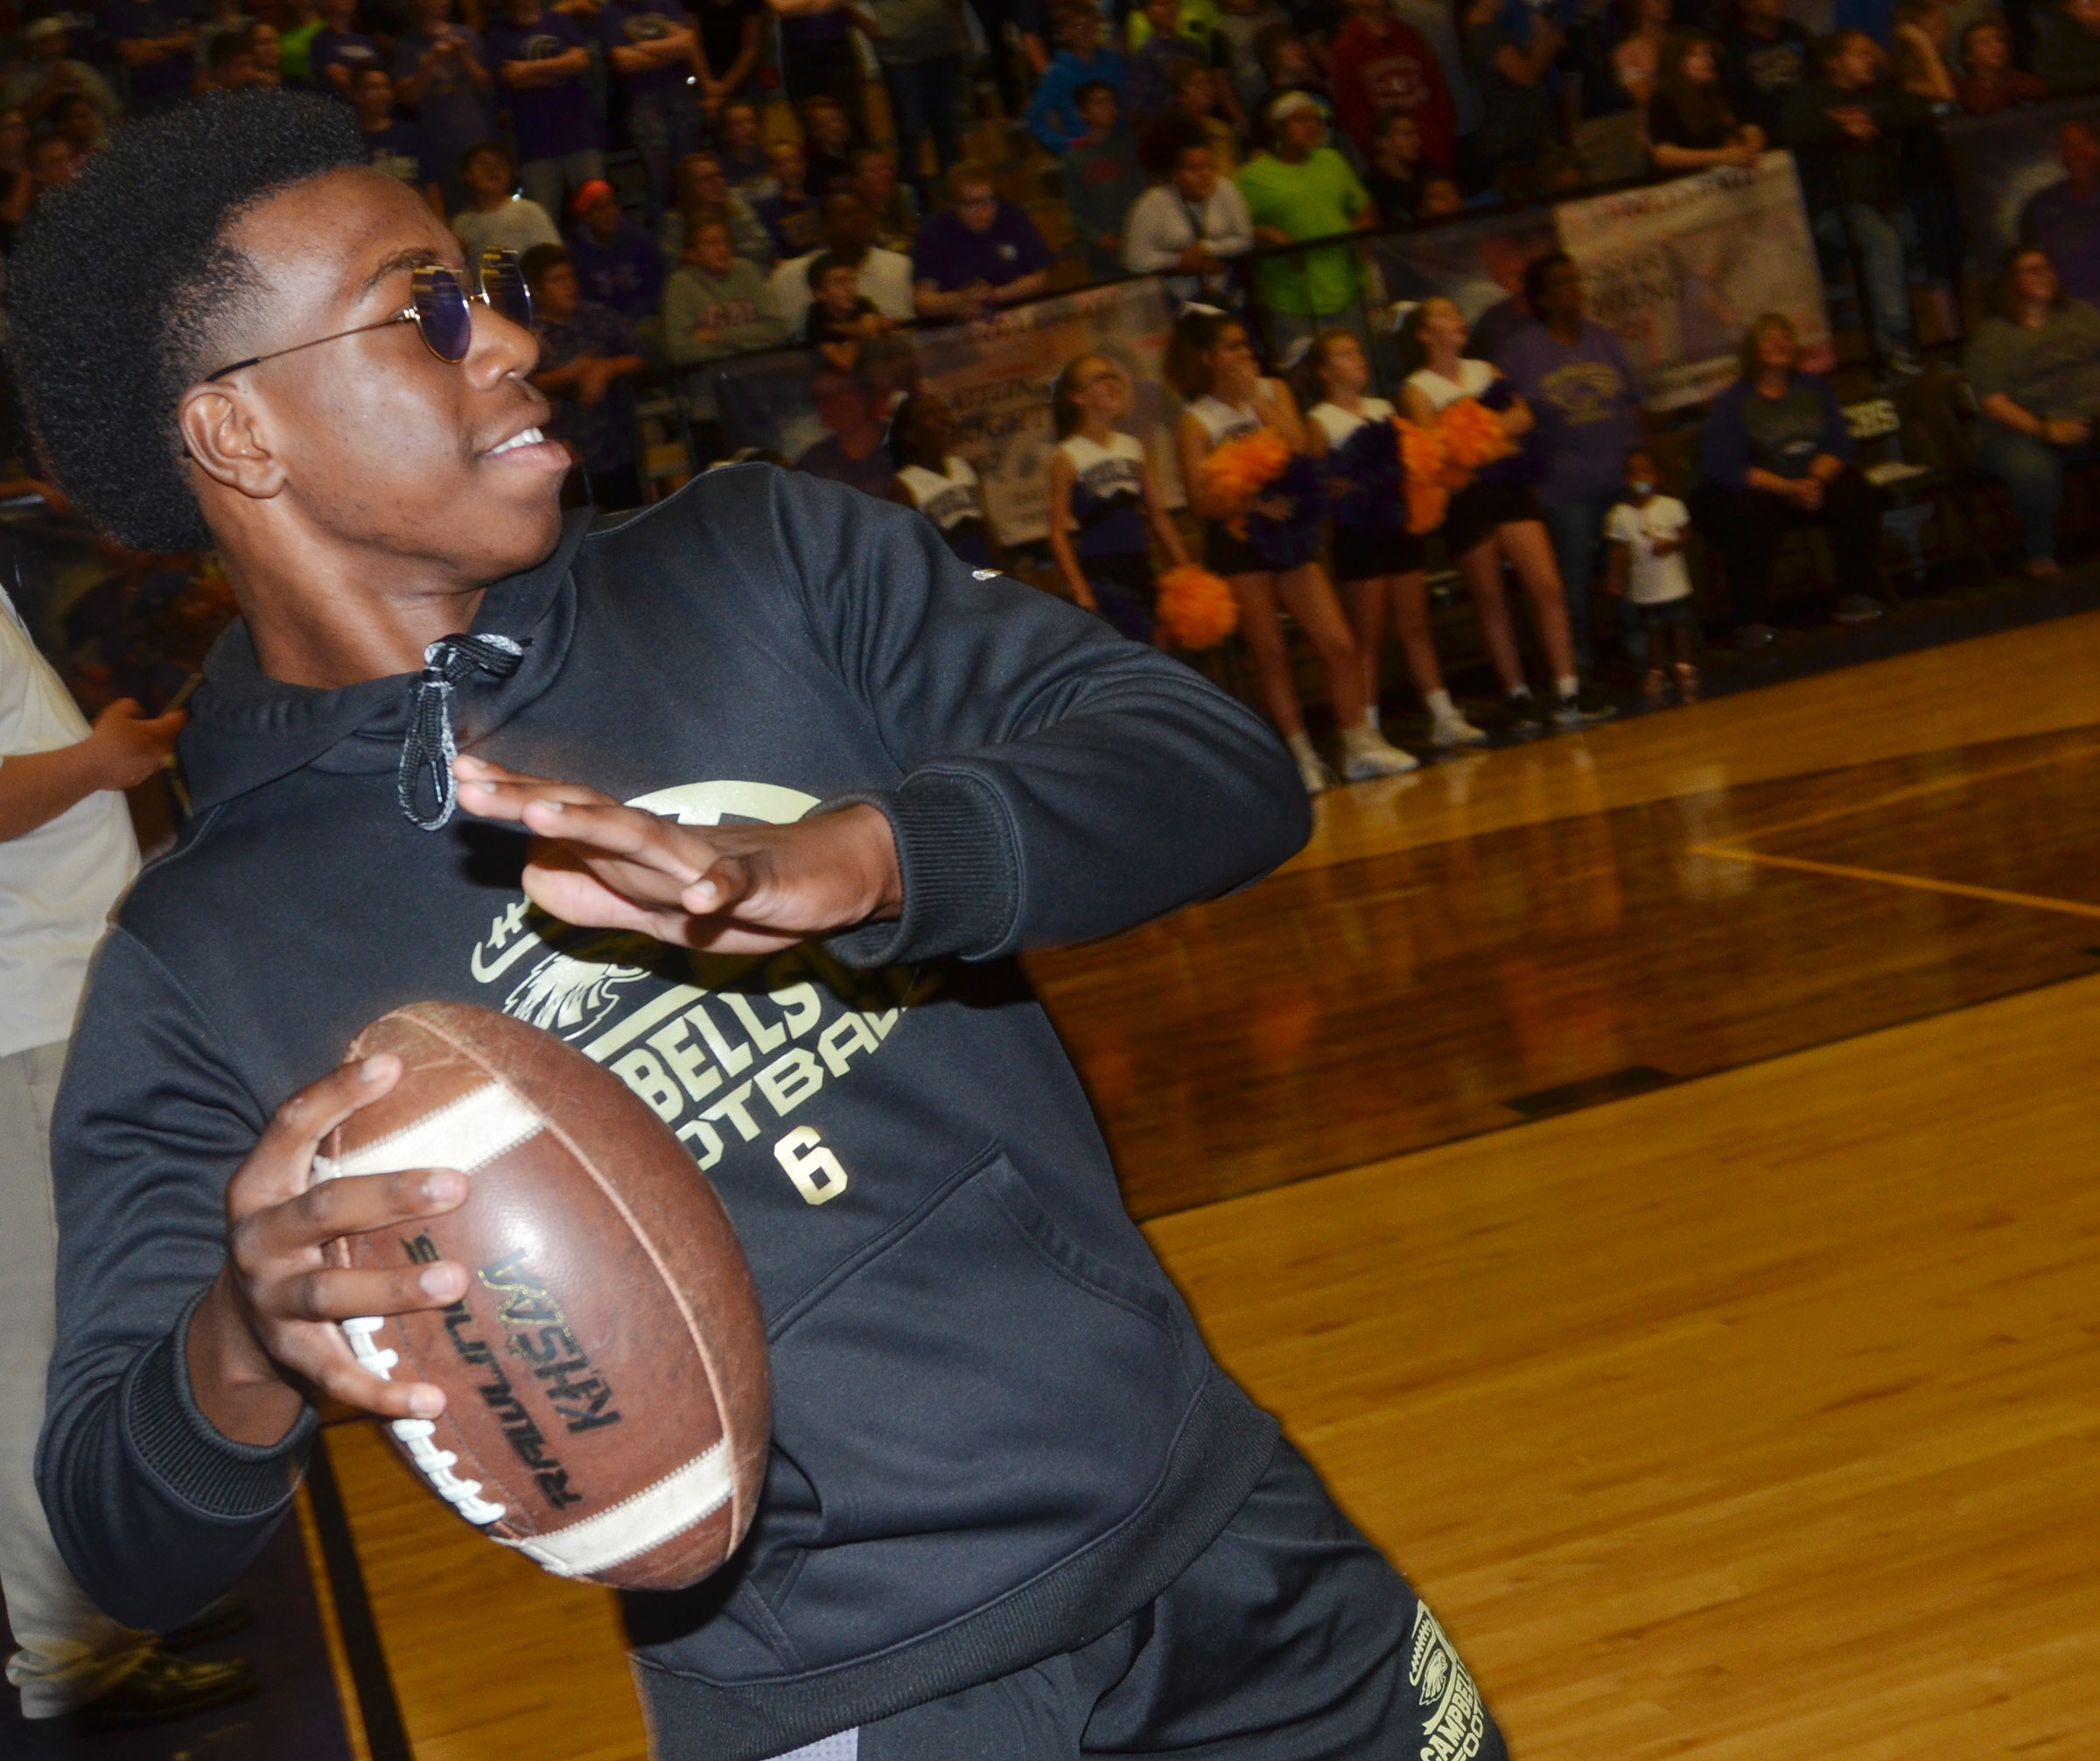 CHS sophomore Malachi Corley competes in a spirit game.